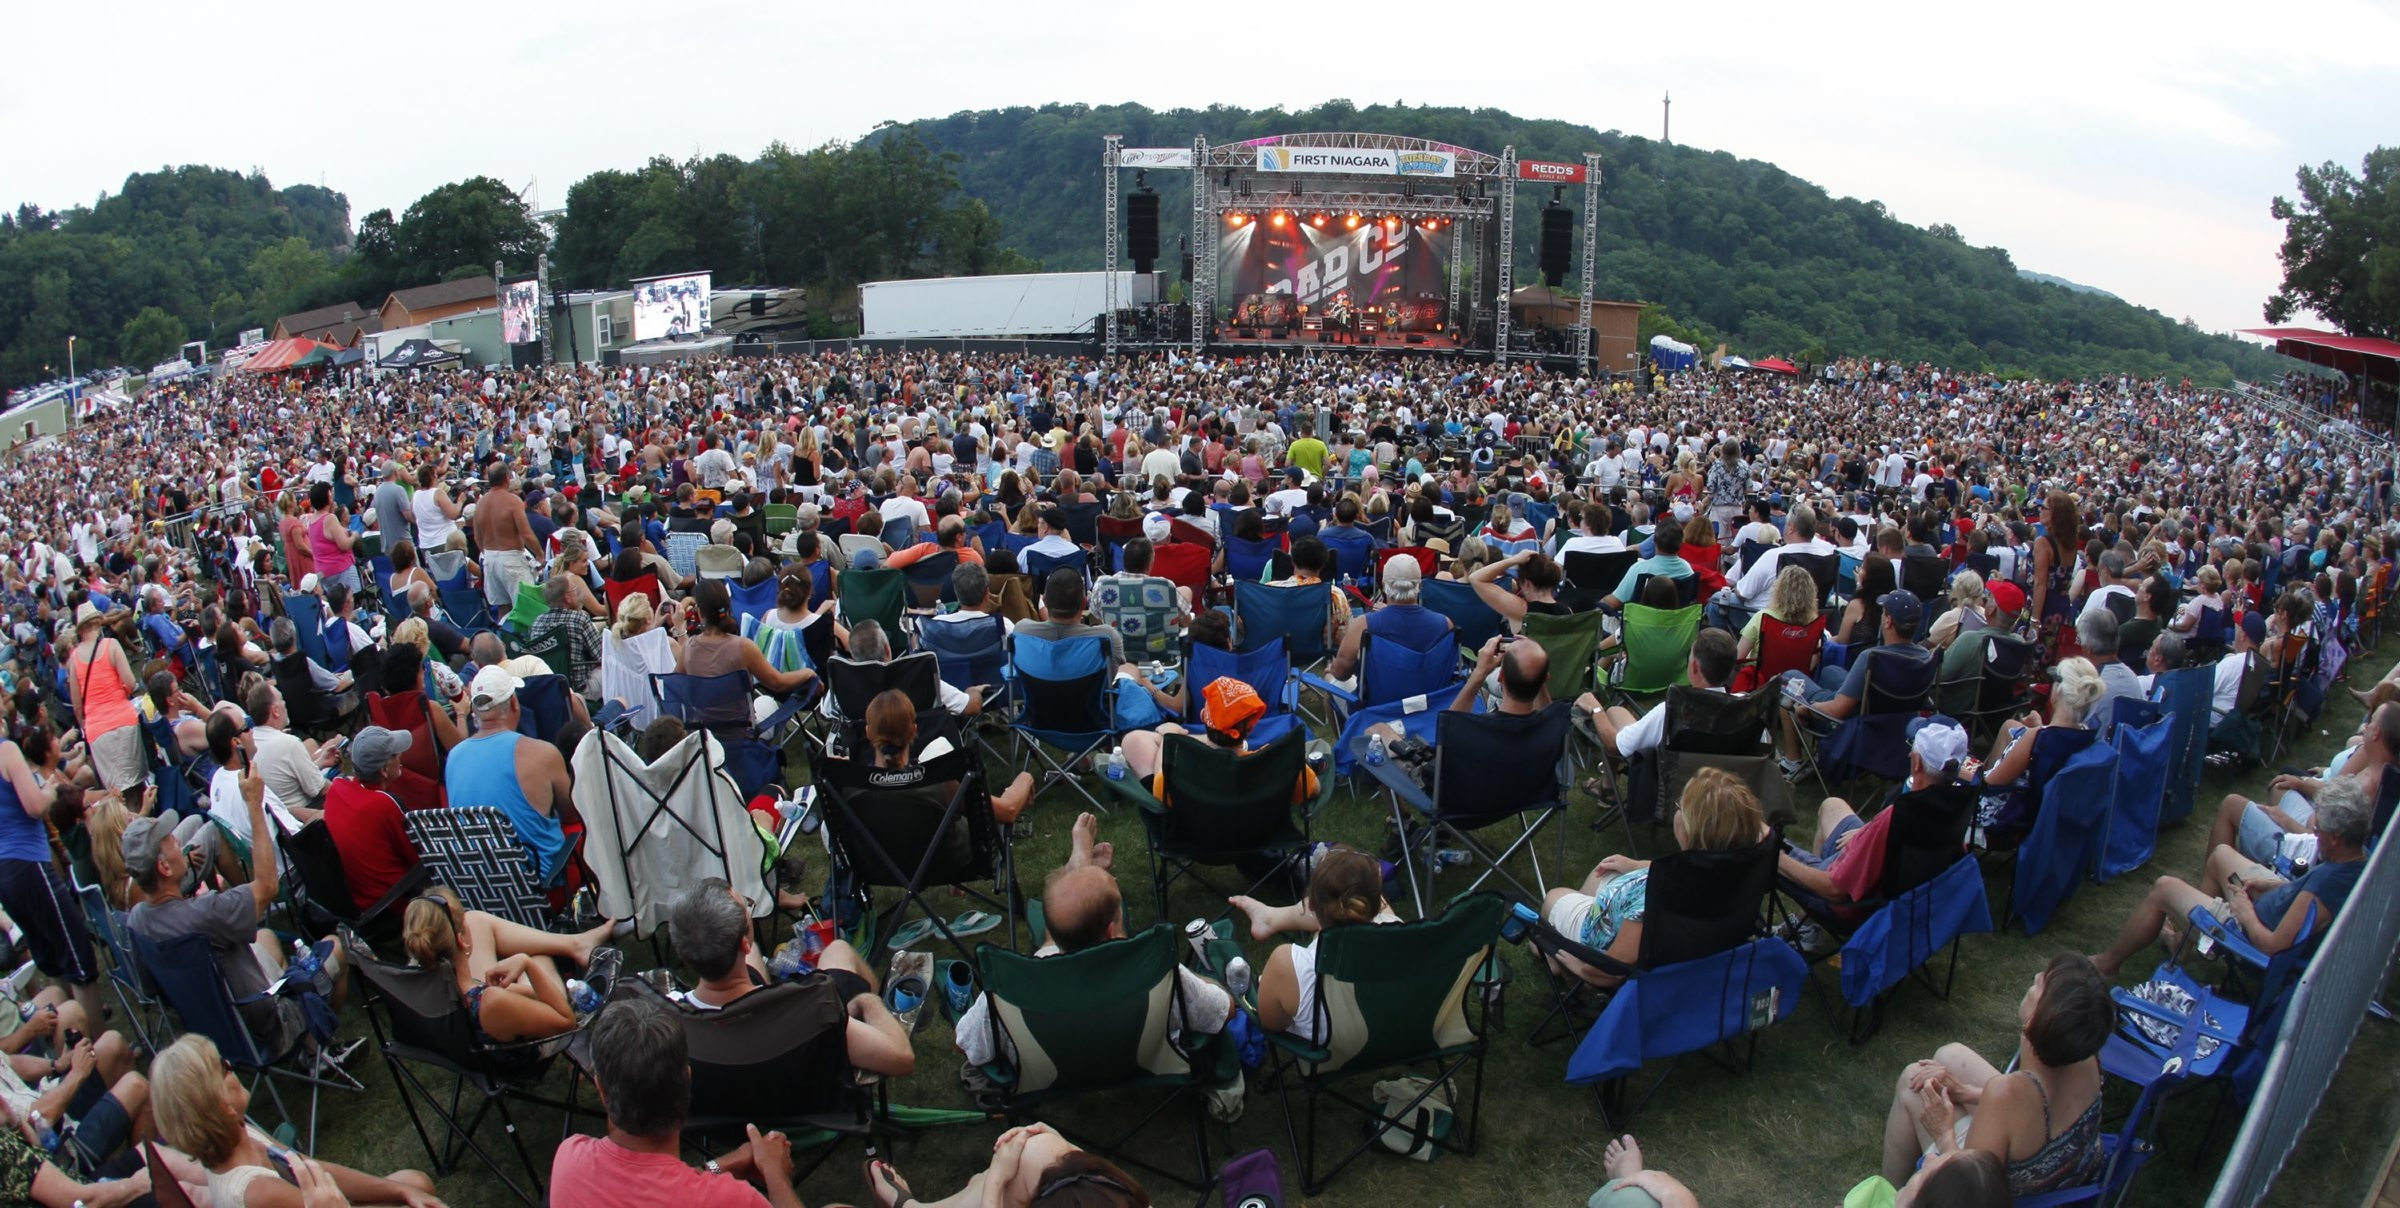 Artpartk summer concerts draw thousands of people, requiring extra police services to direct traffic. Pictured is the crowd at last summer's concert with Bad Company and lead singer Paul Rodgers. (Harry Scull Jr. / Buffalo News file photo)